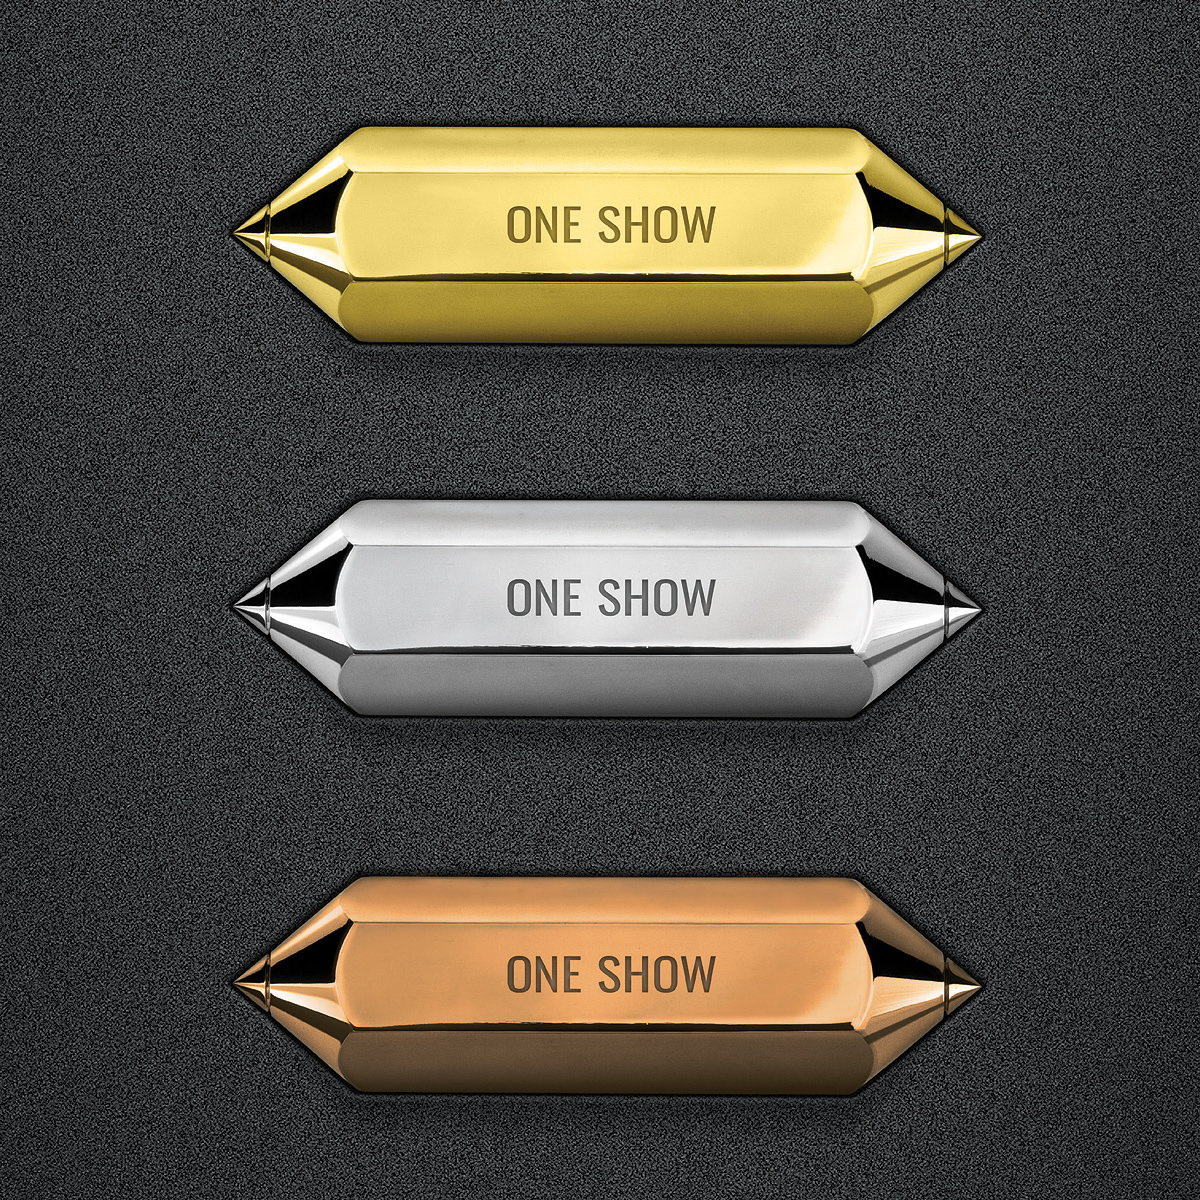 The One Show 2020 - Call for Entries